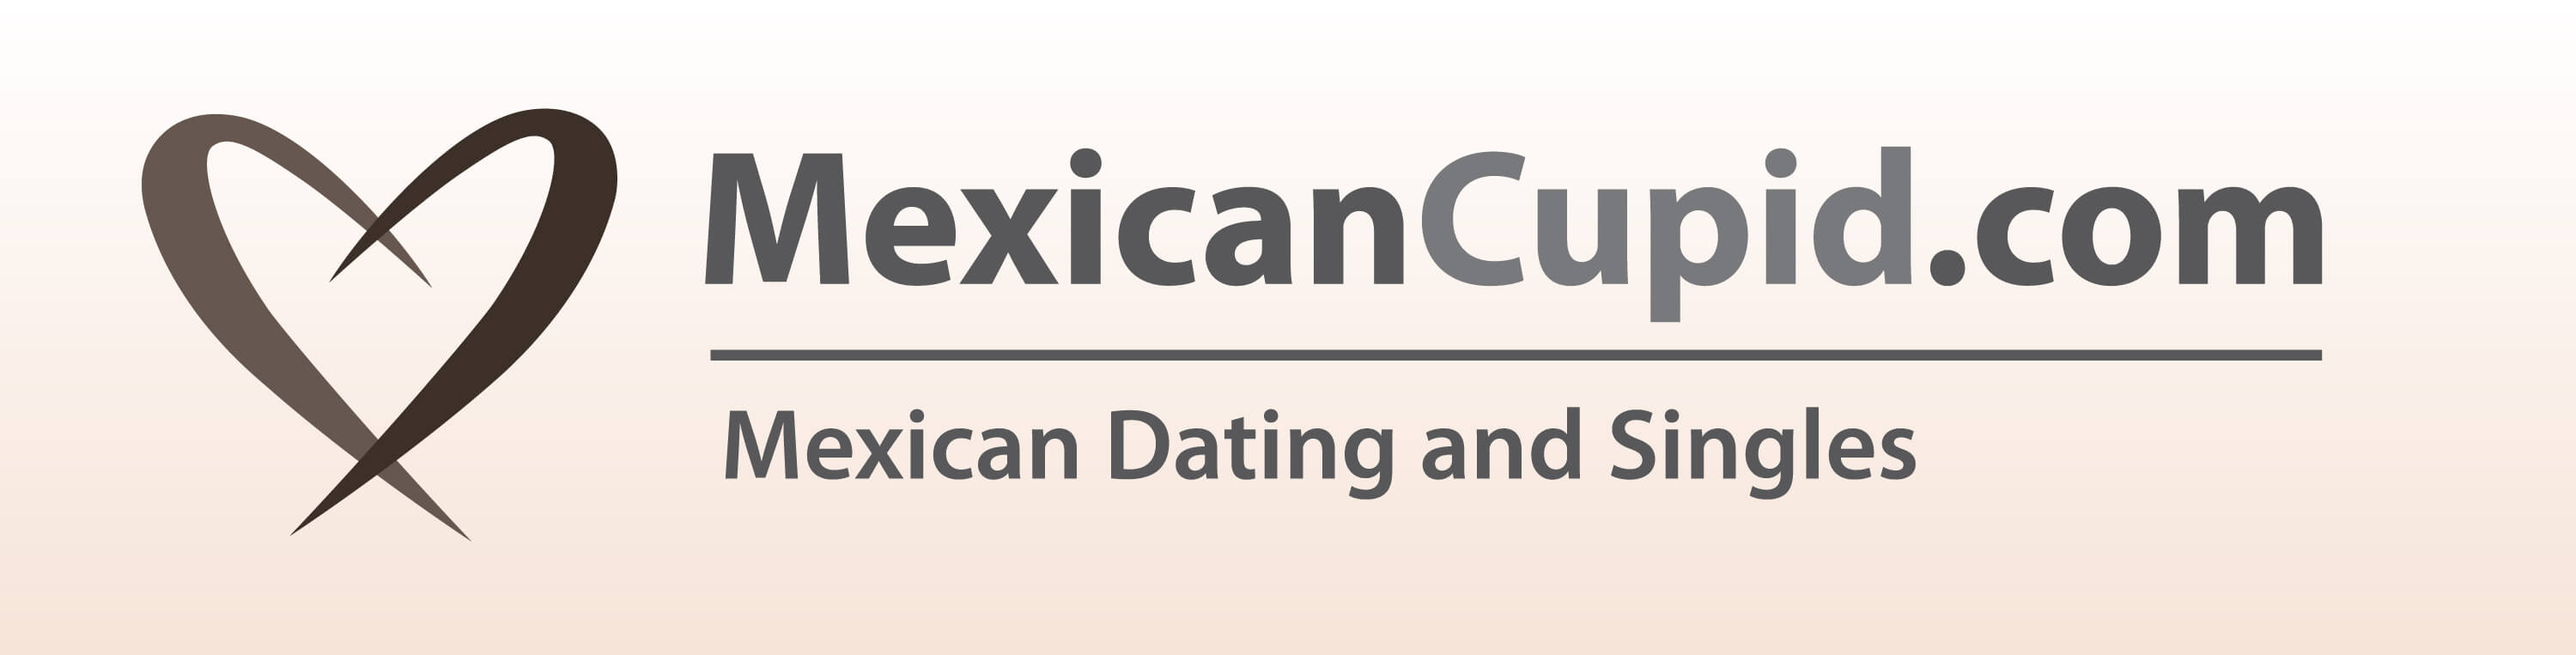 MexicanCupid Logo